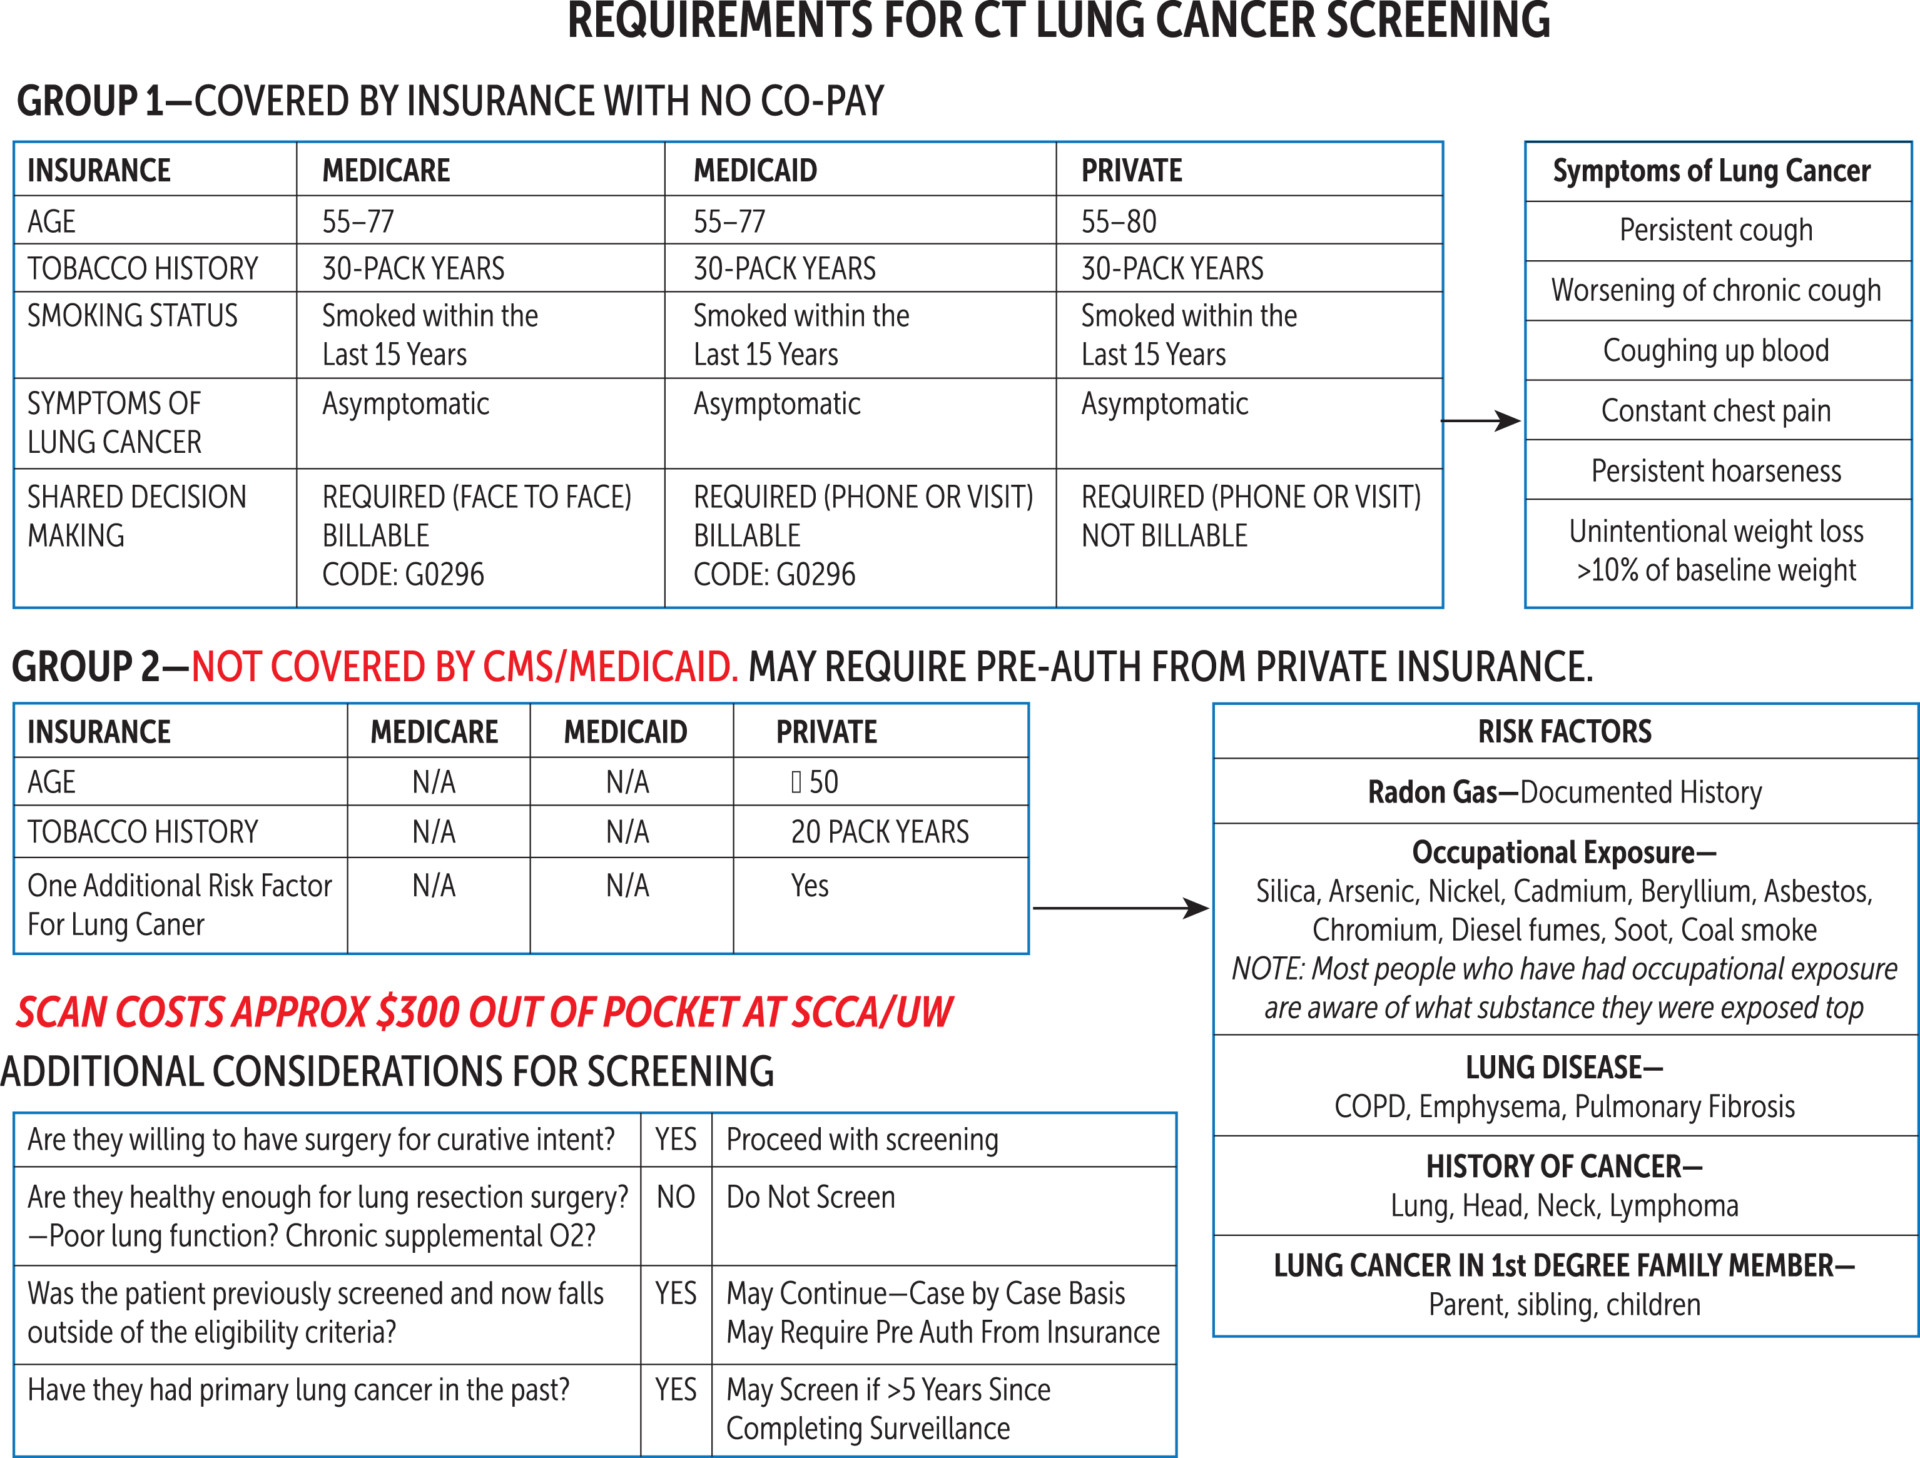 Requirements for CT Lung Cancer Screening